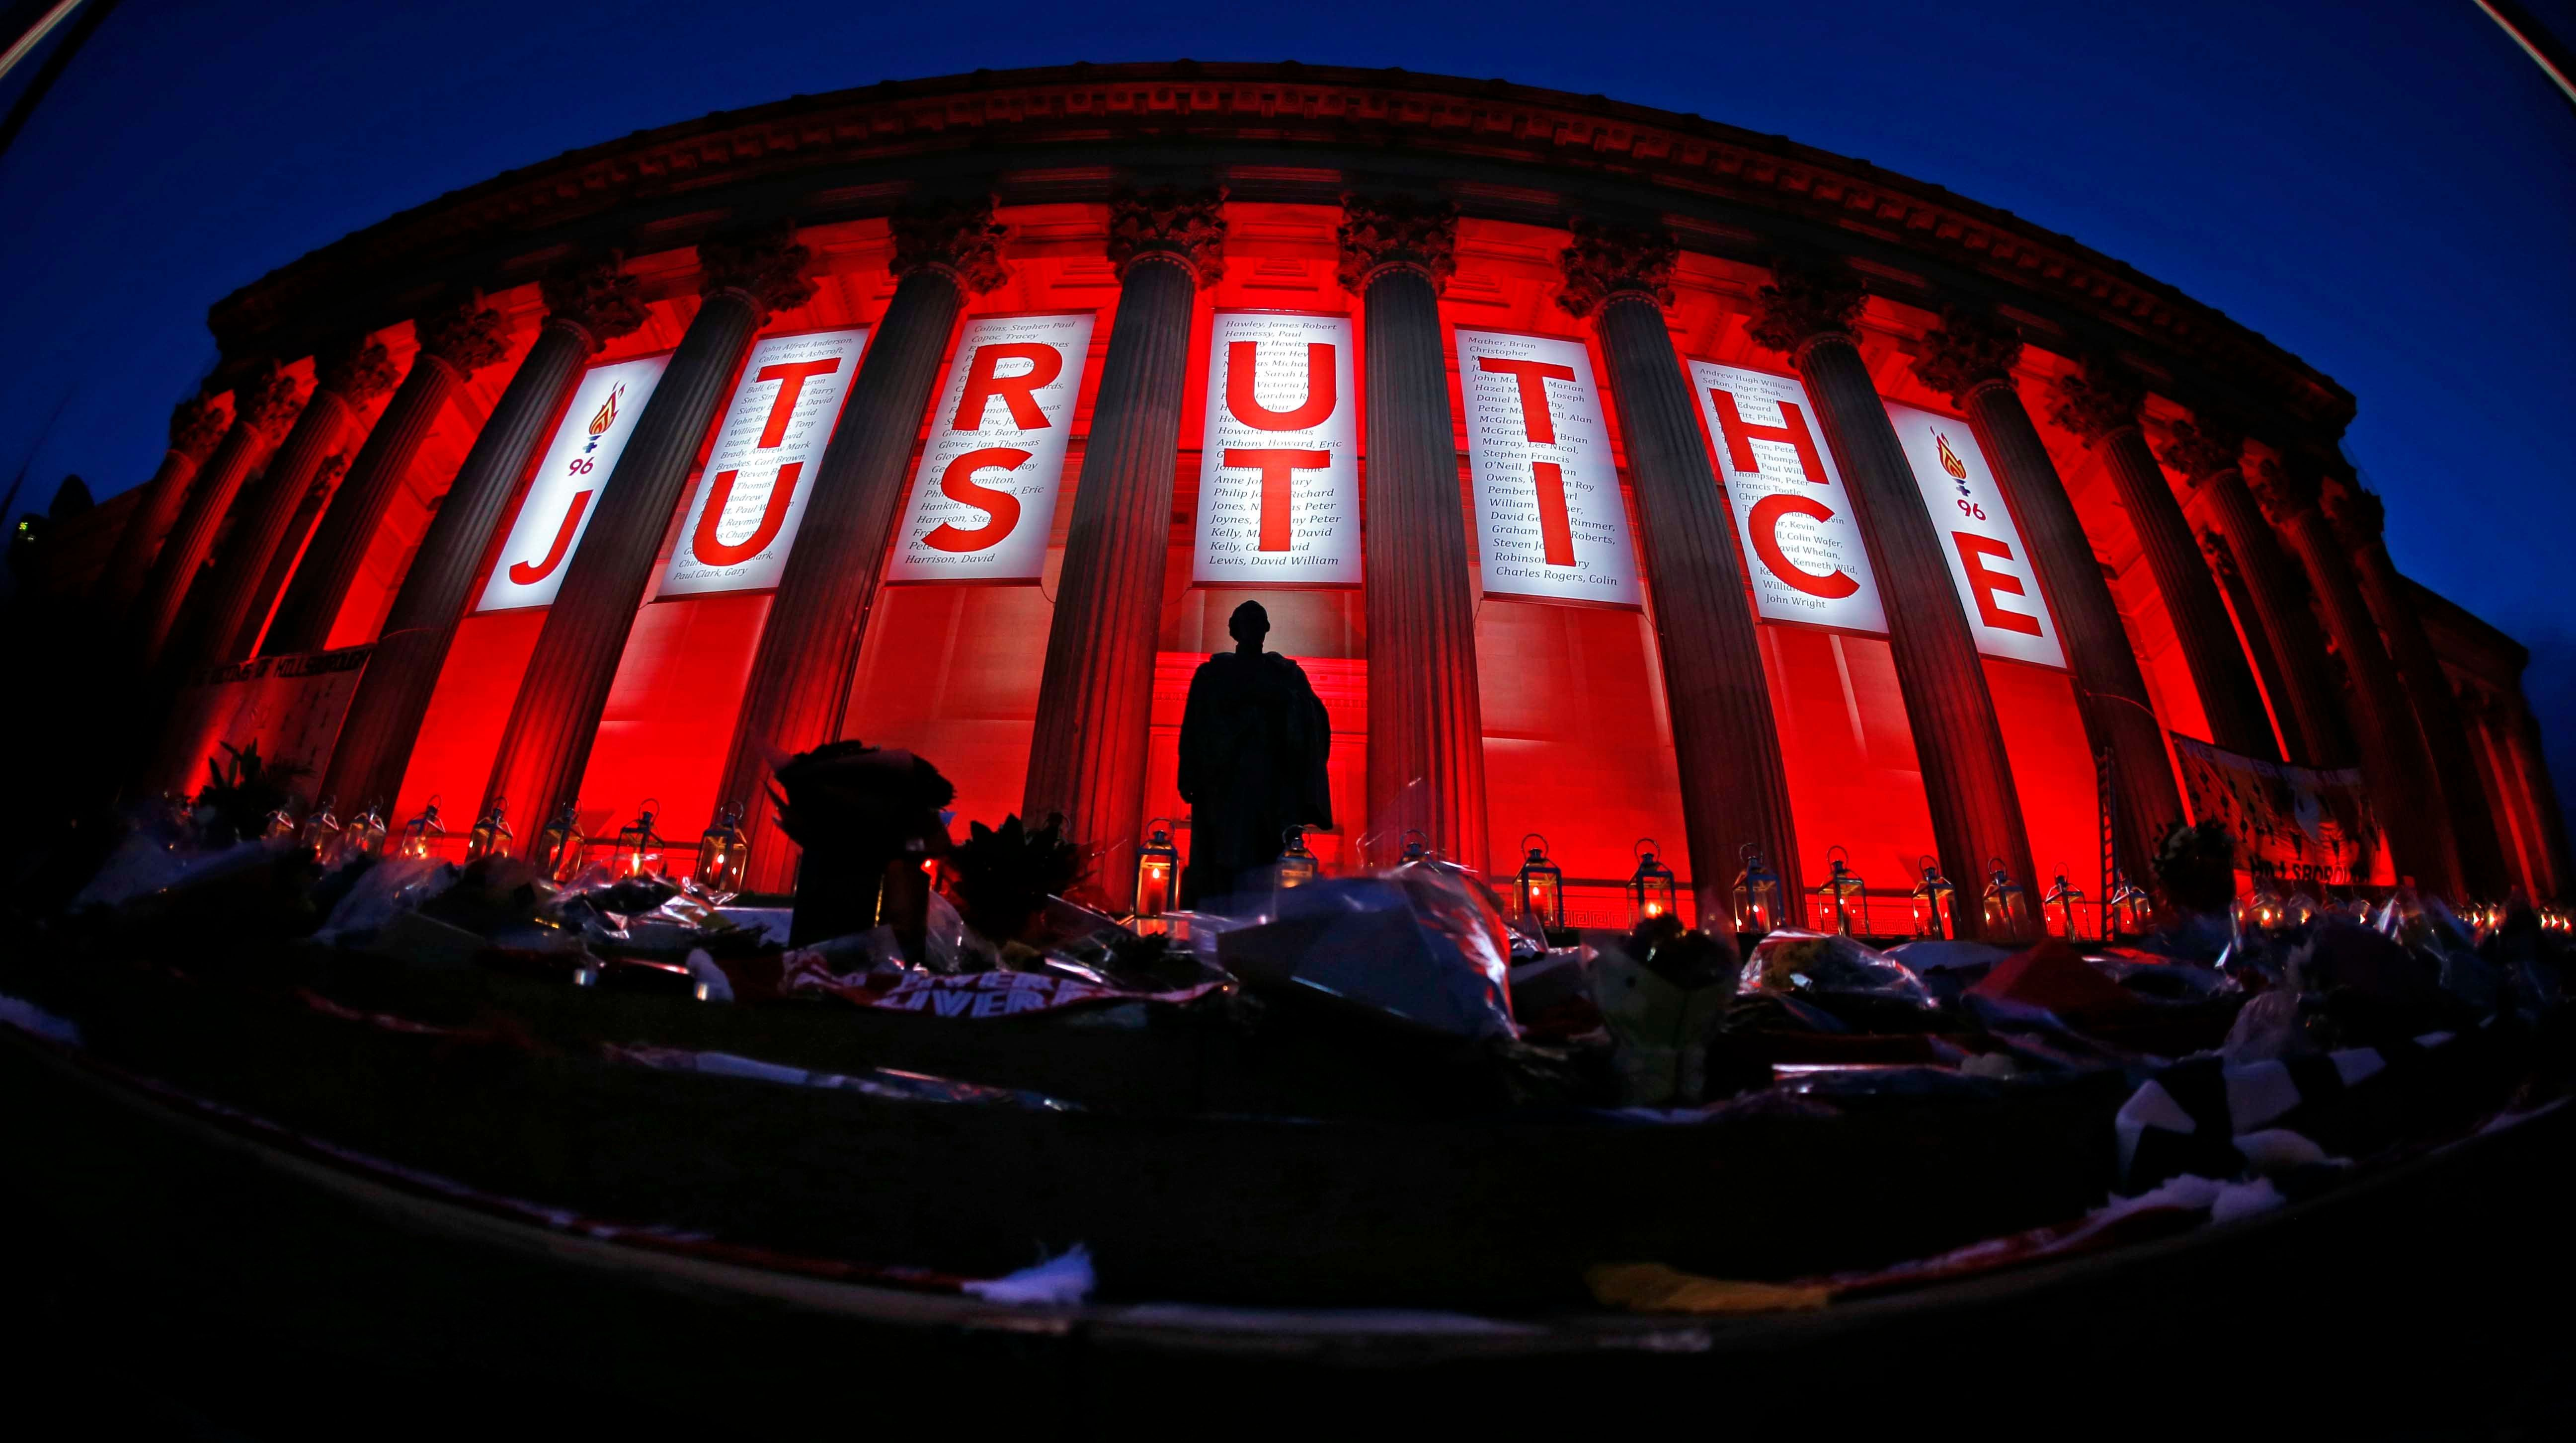 St George's Hall in Liverpool is illuminated following a special commemorative service to make the outcome...